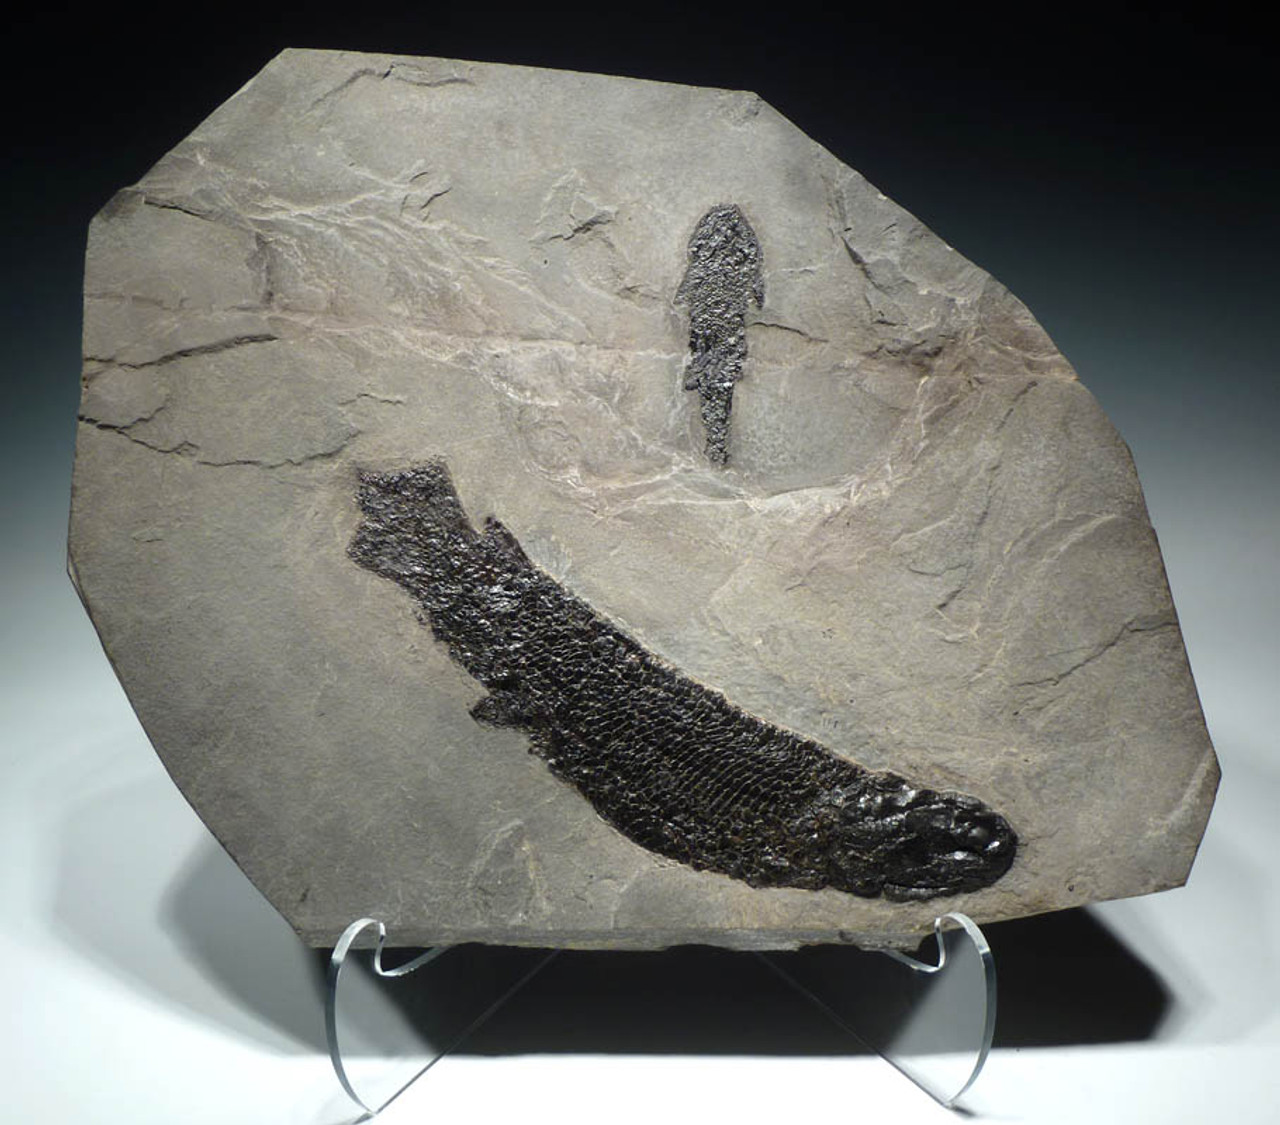 GYROPTYCHIUS FISH FOSSIL FROM SCOTLAND